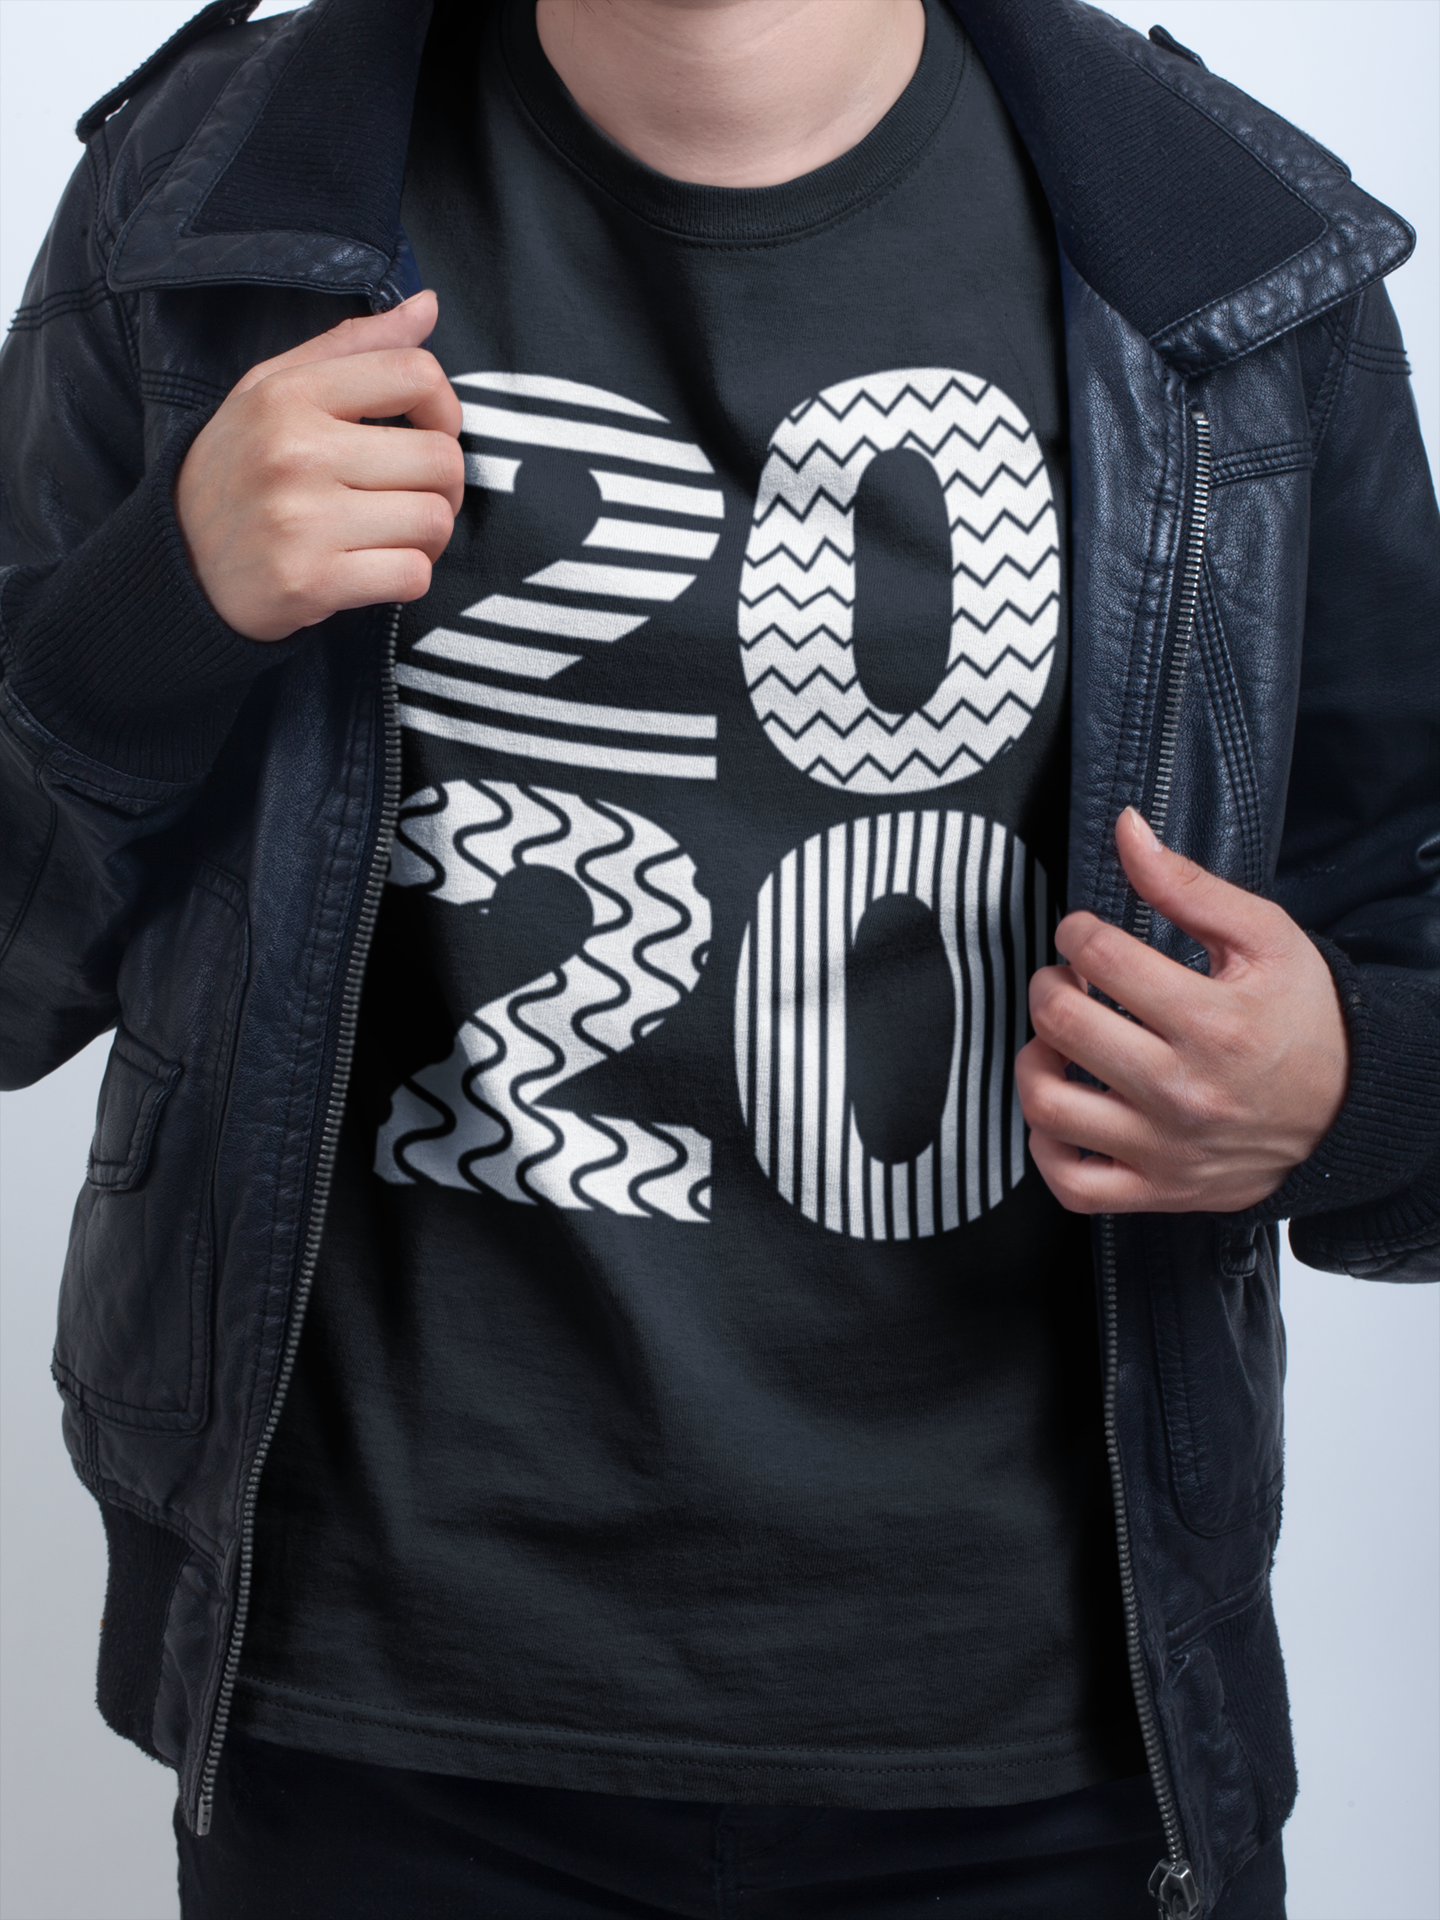 Geometric New Years Eve 2020 New Year Outfit Idea Unisex